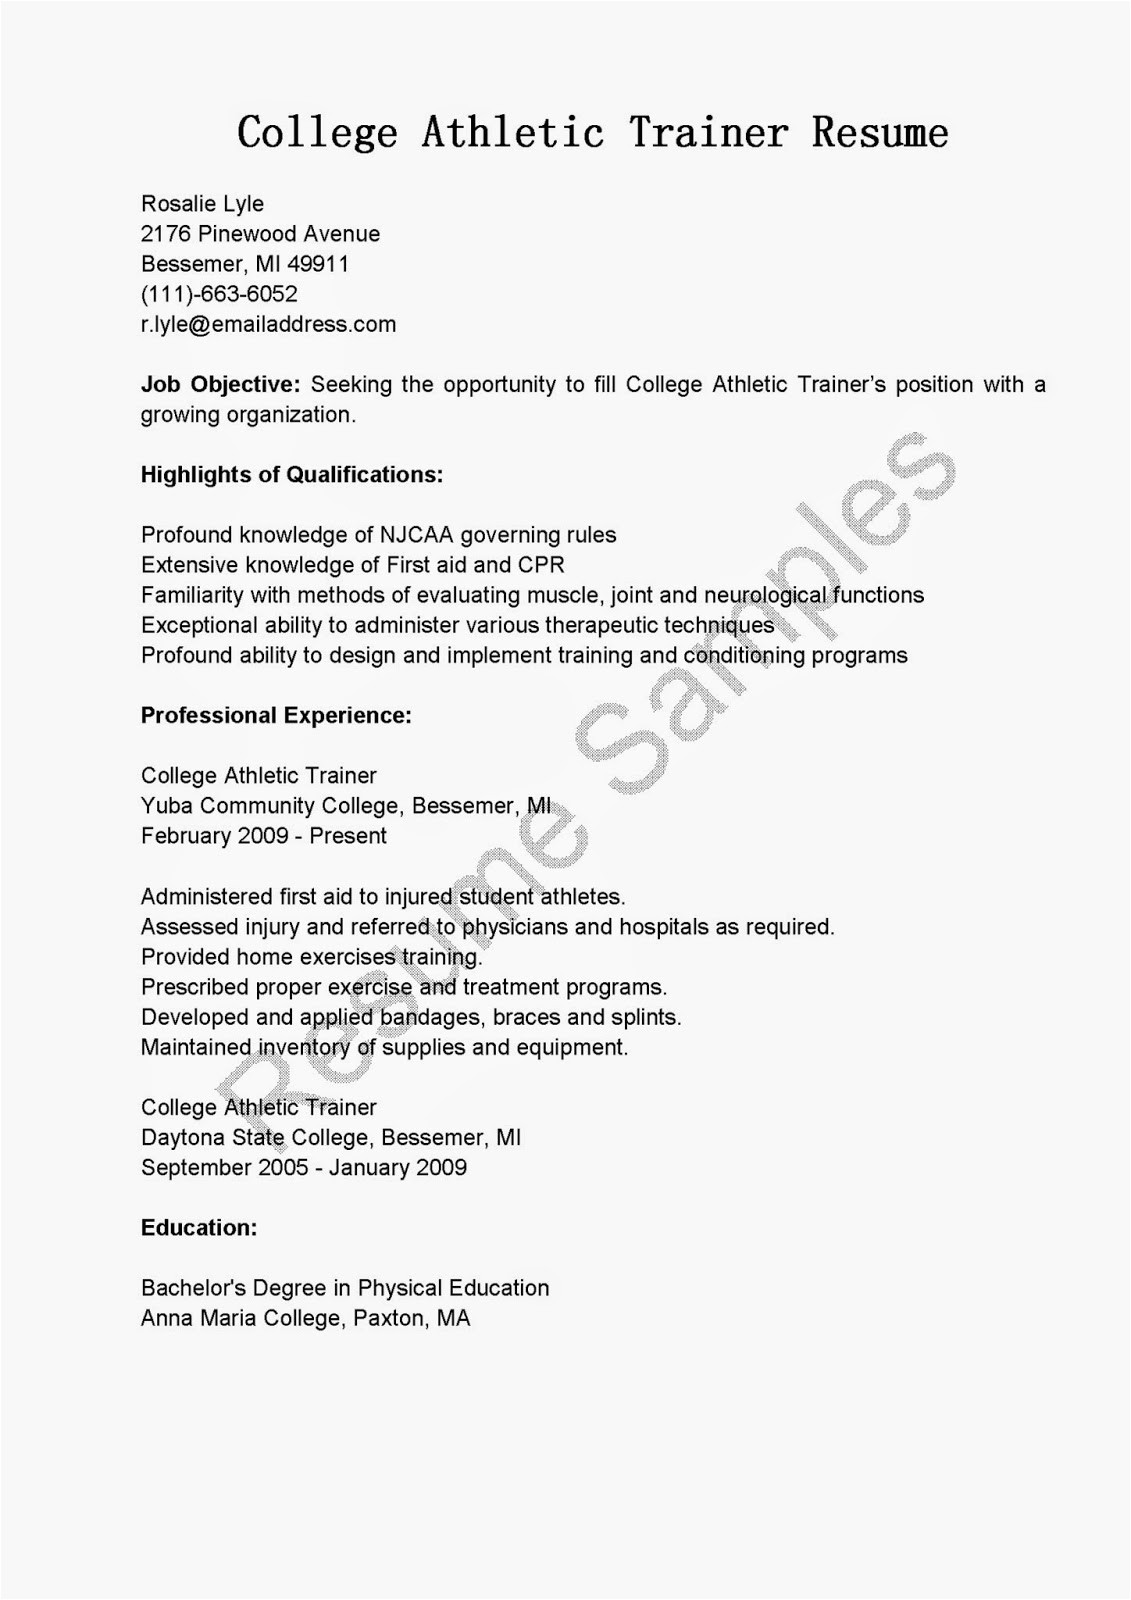 College athlete Resume Sample Resume Samples College athletic Trainer Resume Sample